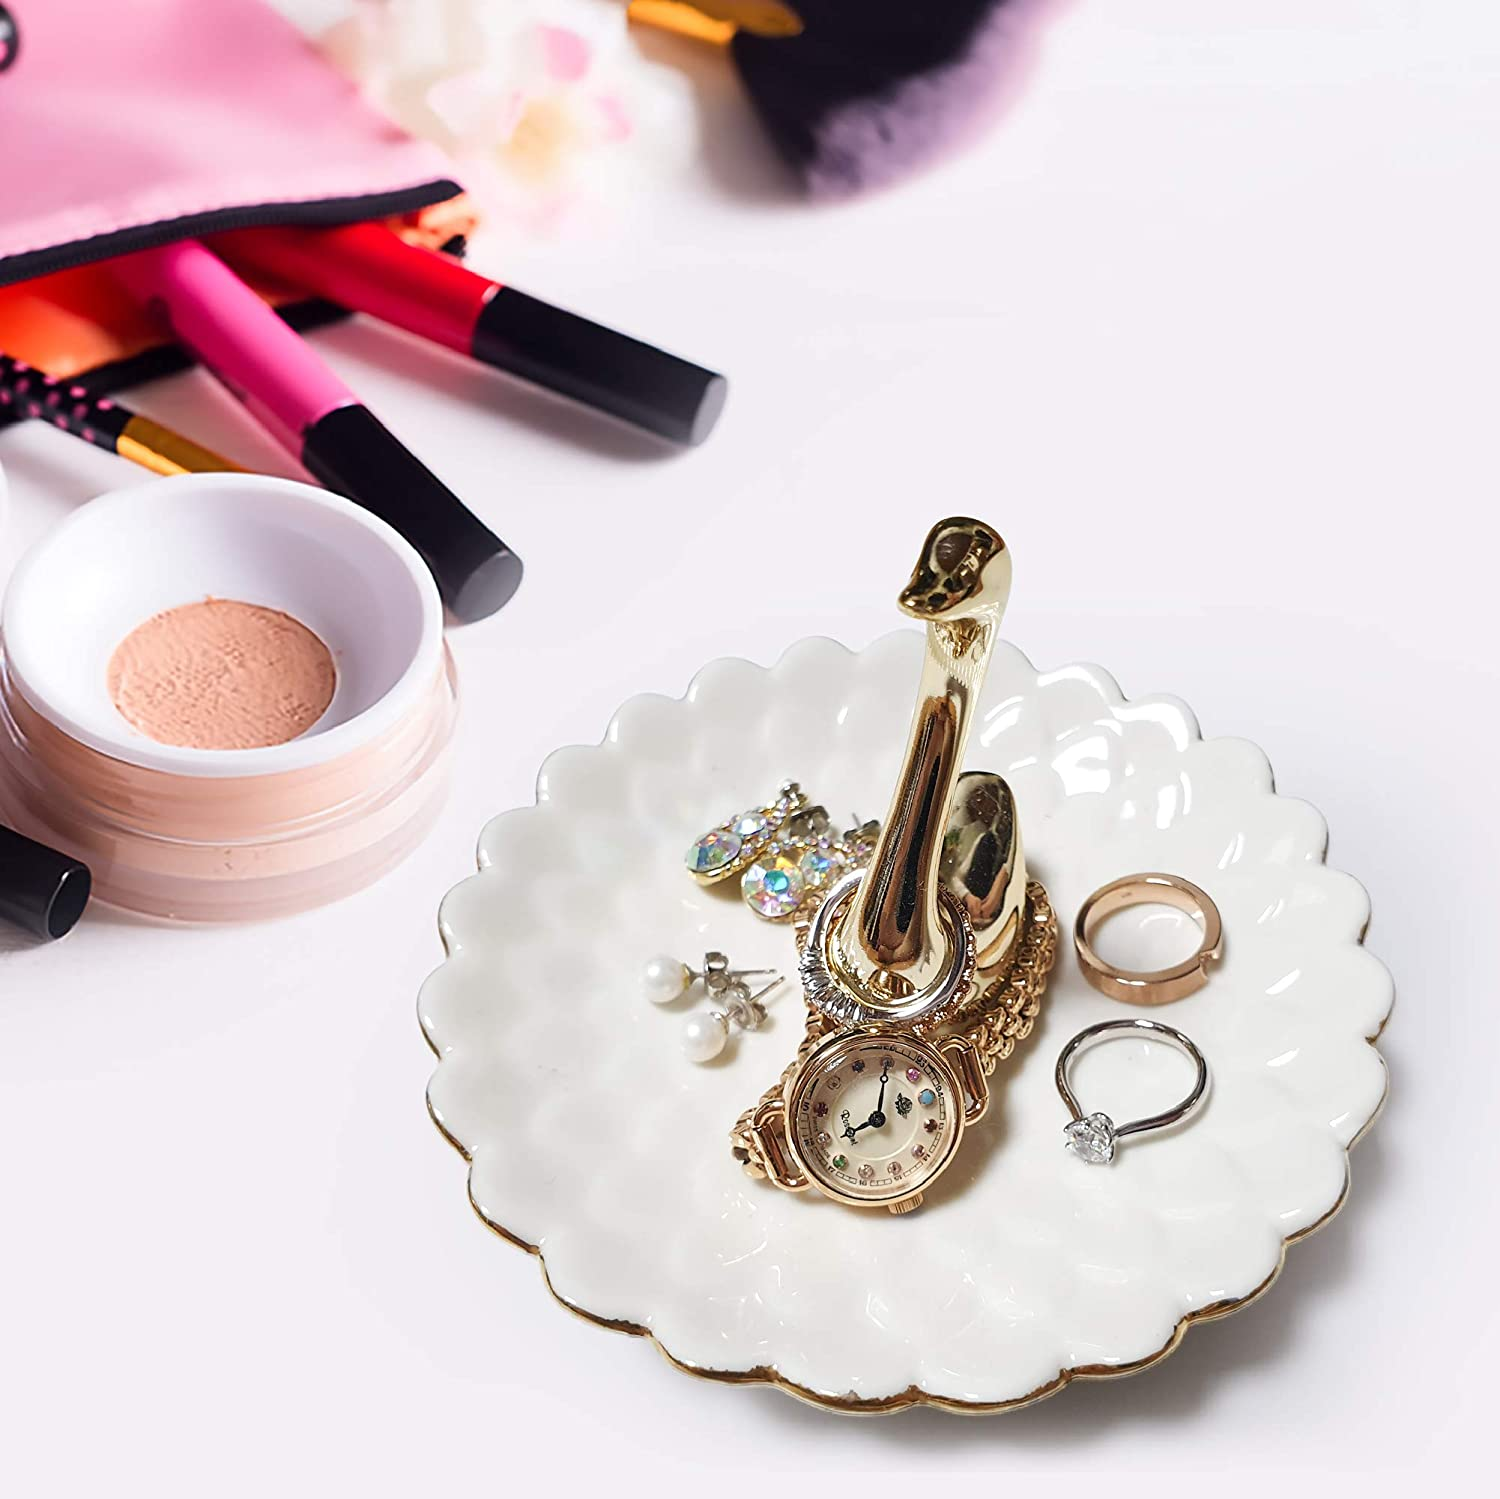 Stunningly Beautiful Swan Ring Holder Dish. White Ceramic with Highly Polished Golden Swan Perfect for Mom, Friend, Girlfriends. Decorative Jewelry, Necklace Holders Organizer Suitable for Display